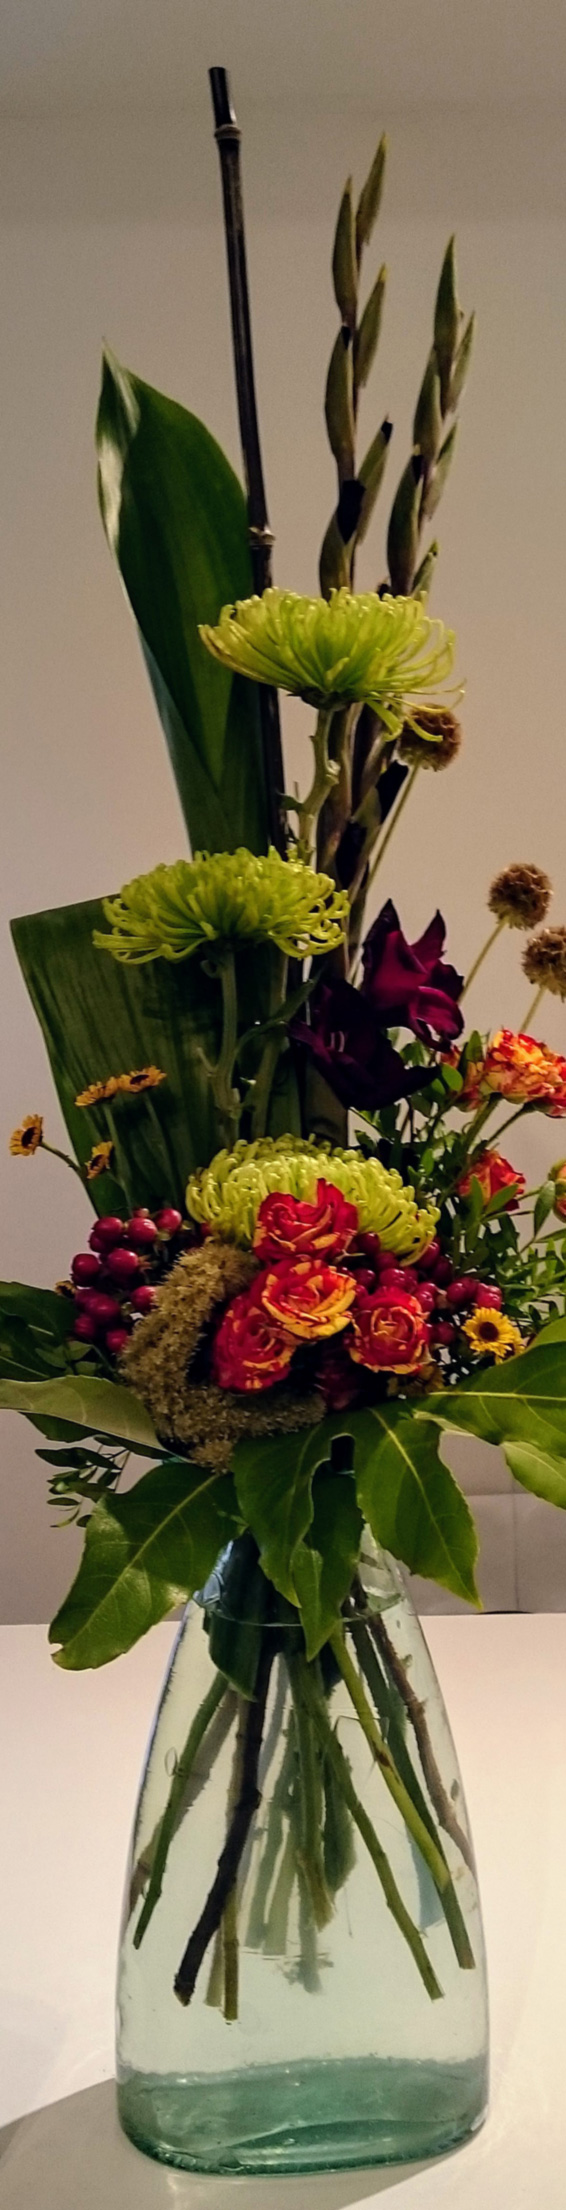 Tropical contract line bouquet, black bamboo, bloom chrysanthemums, roses, hypericum